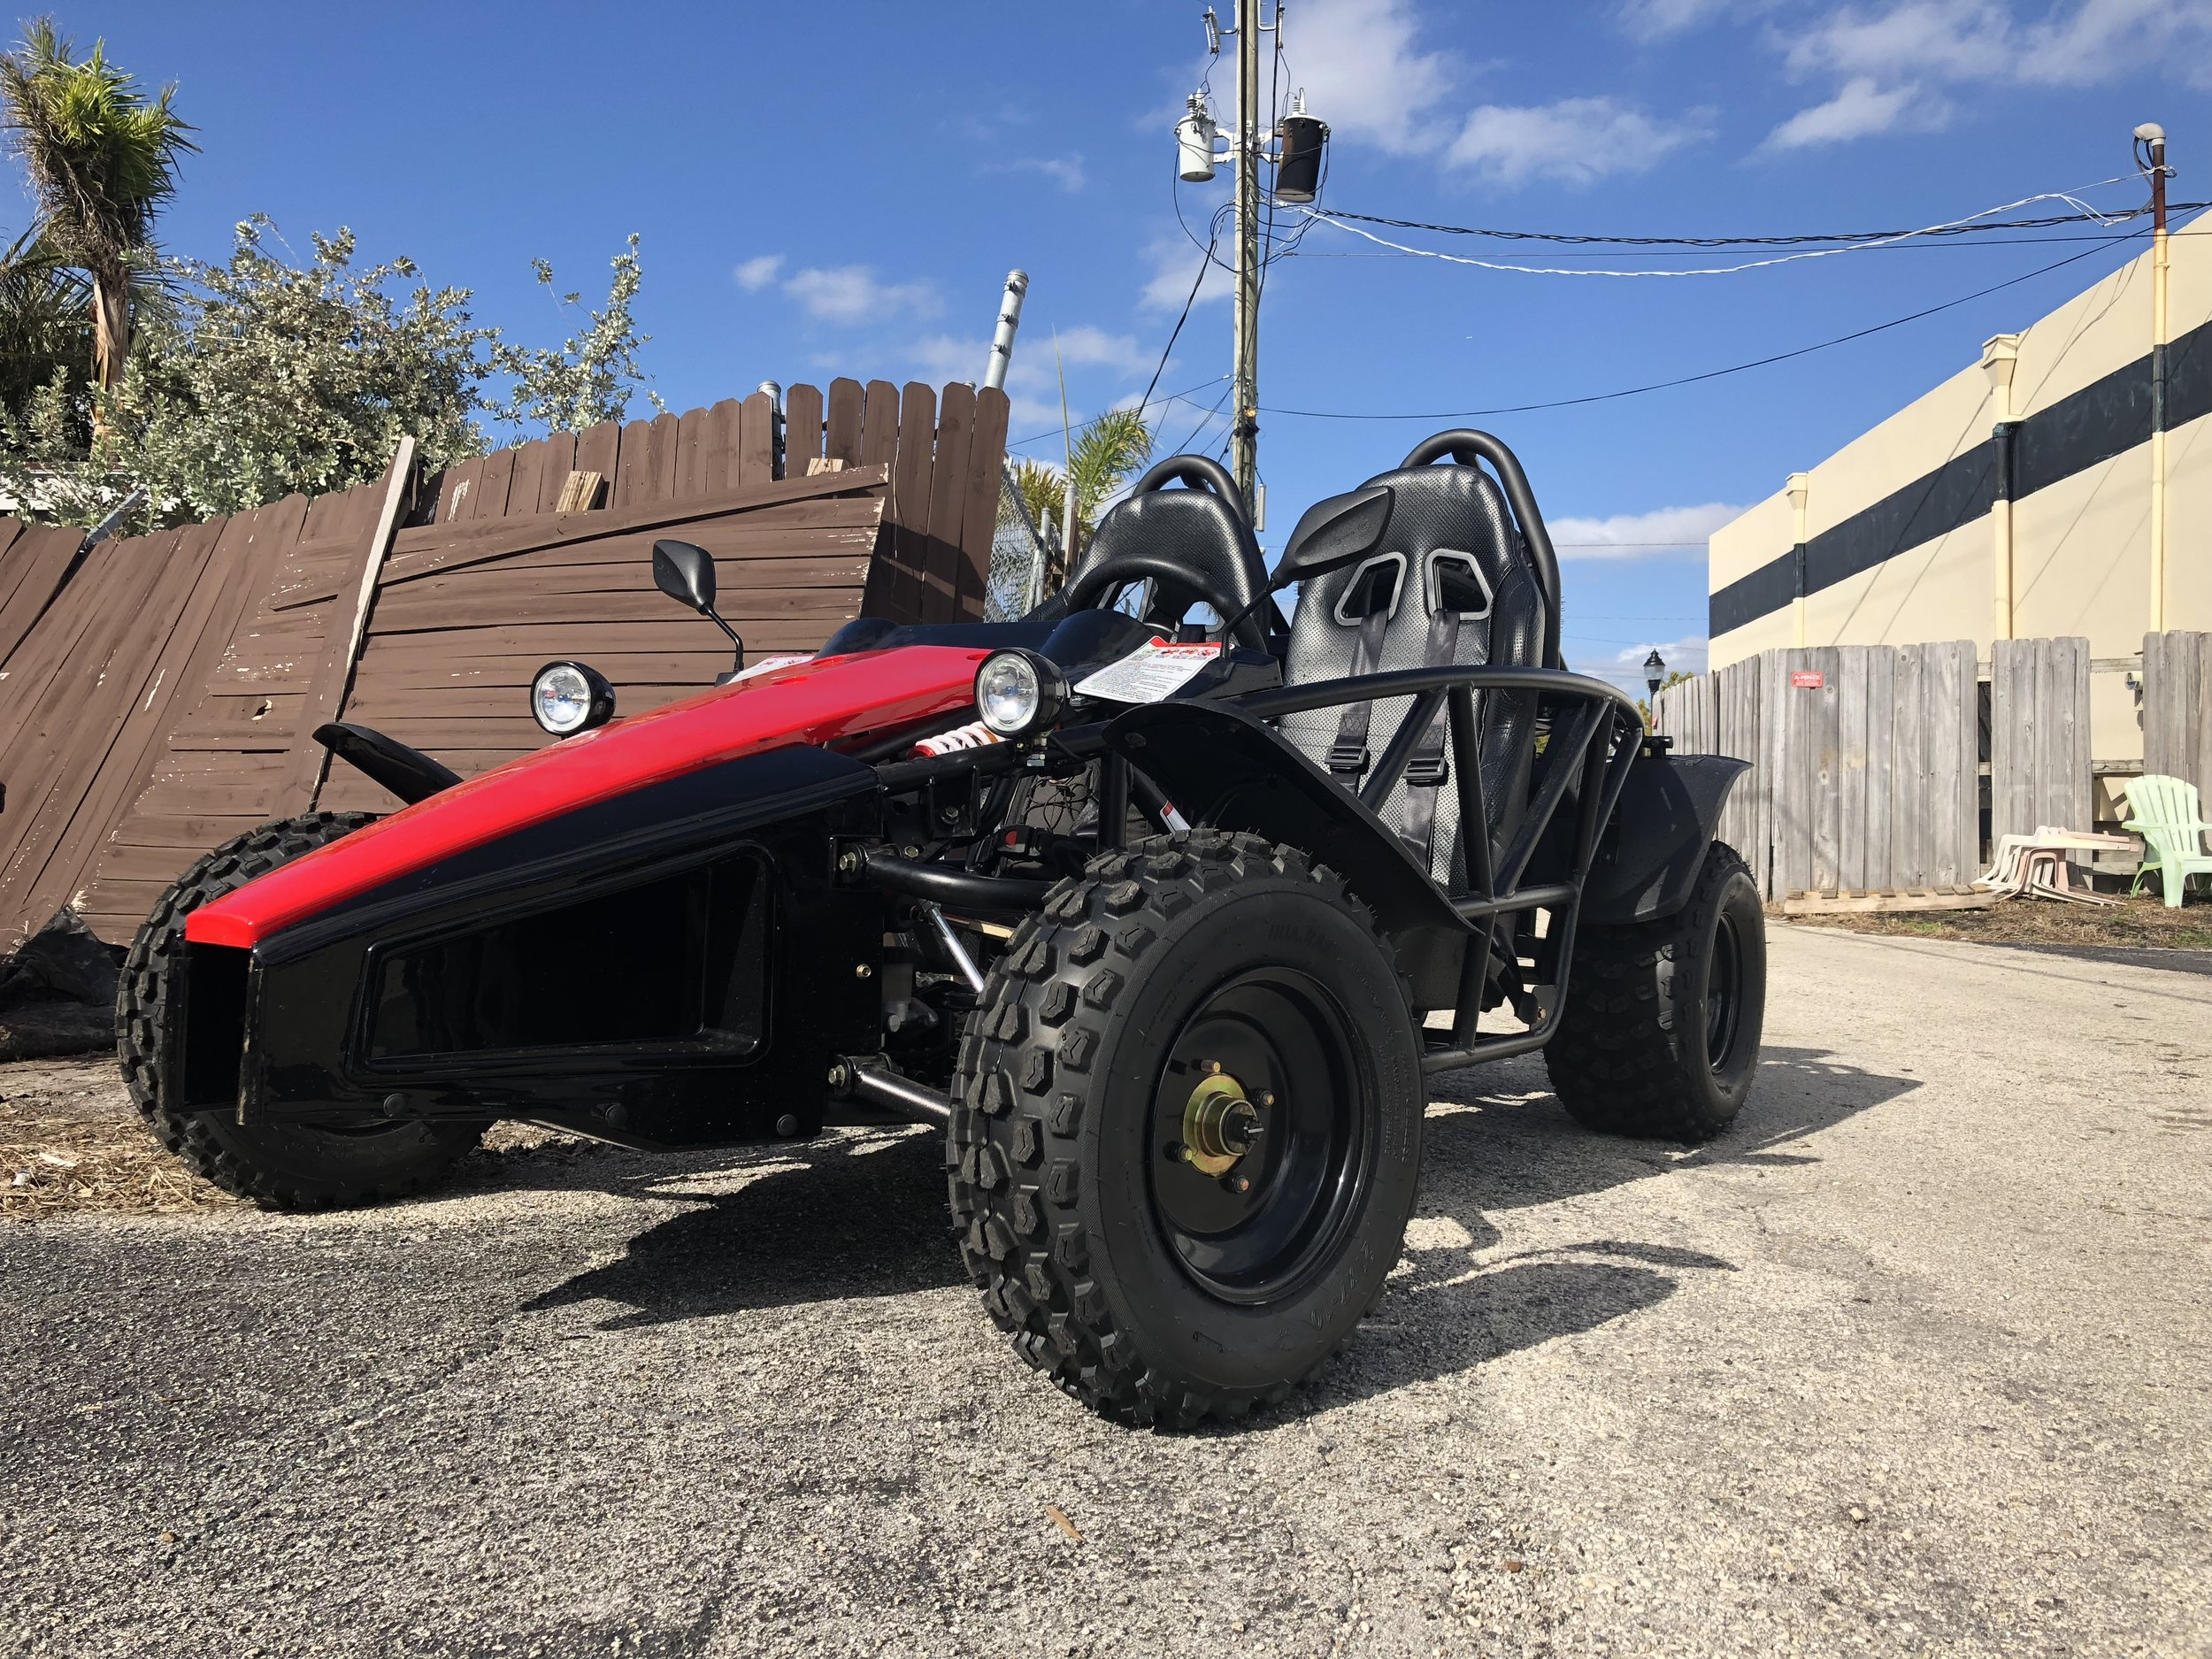 Here's our take on a street legal go kart.